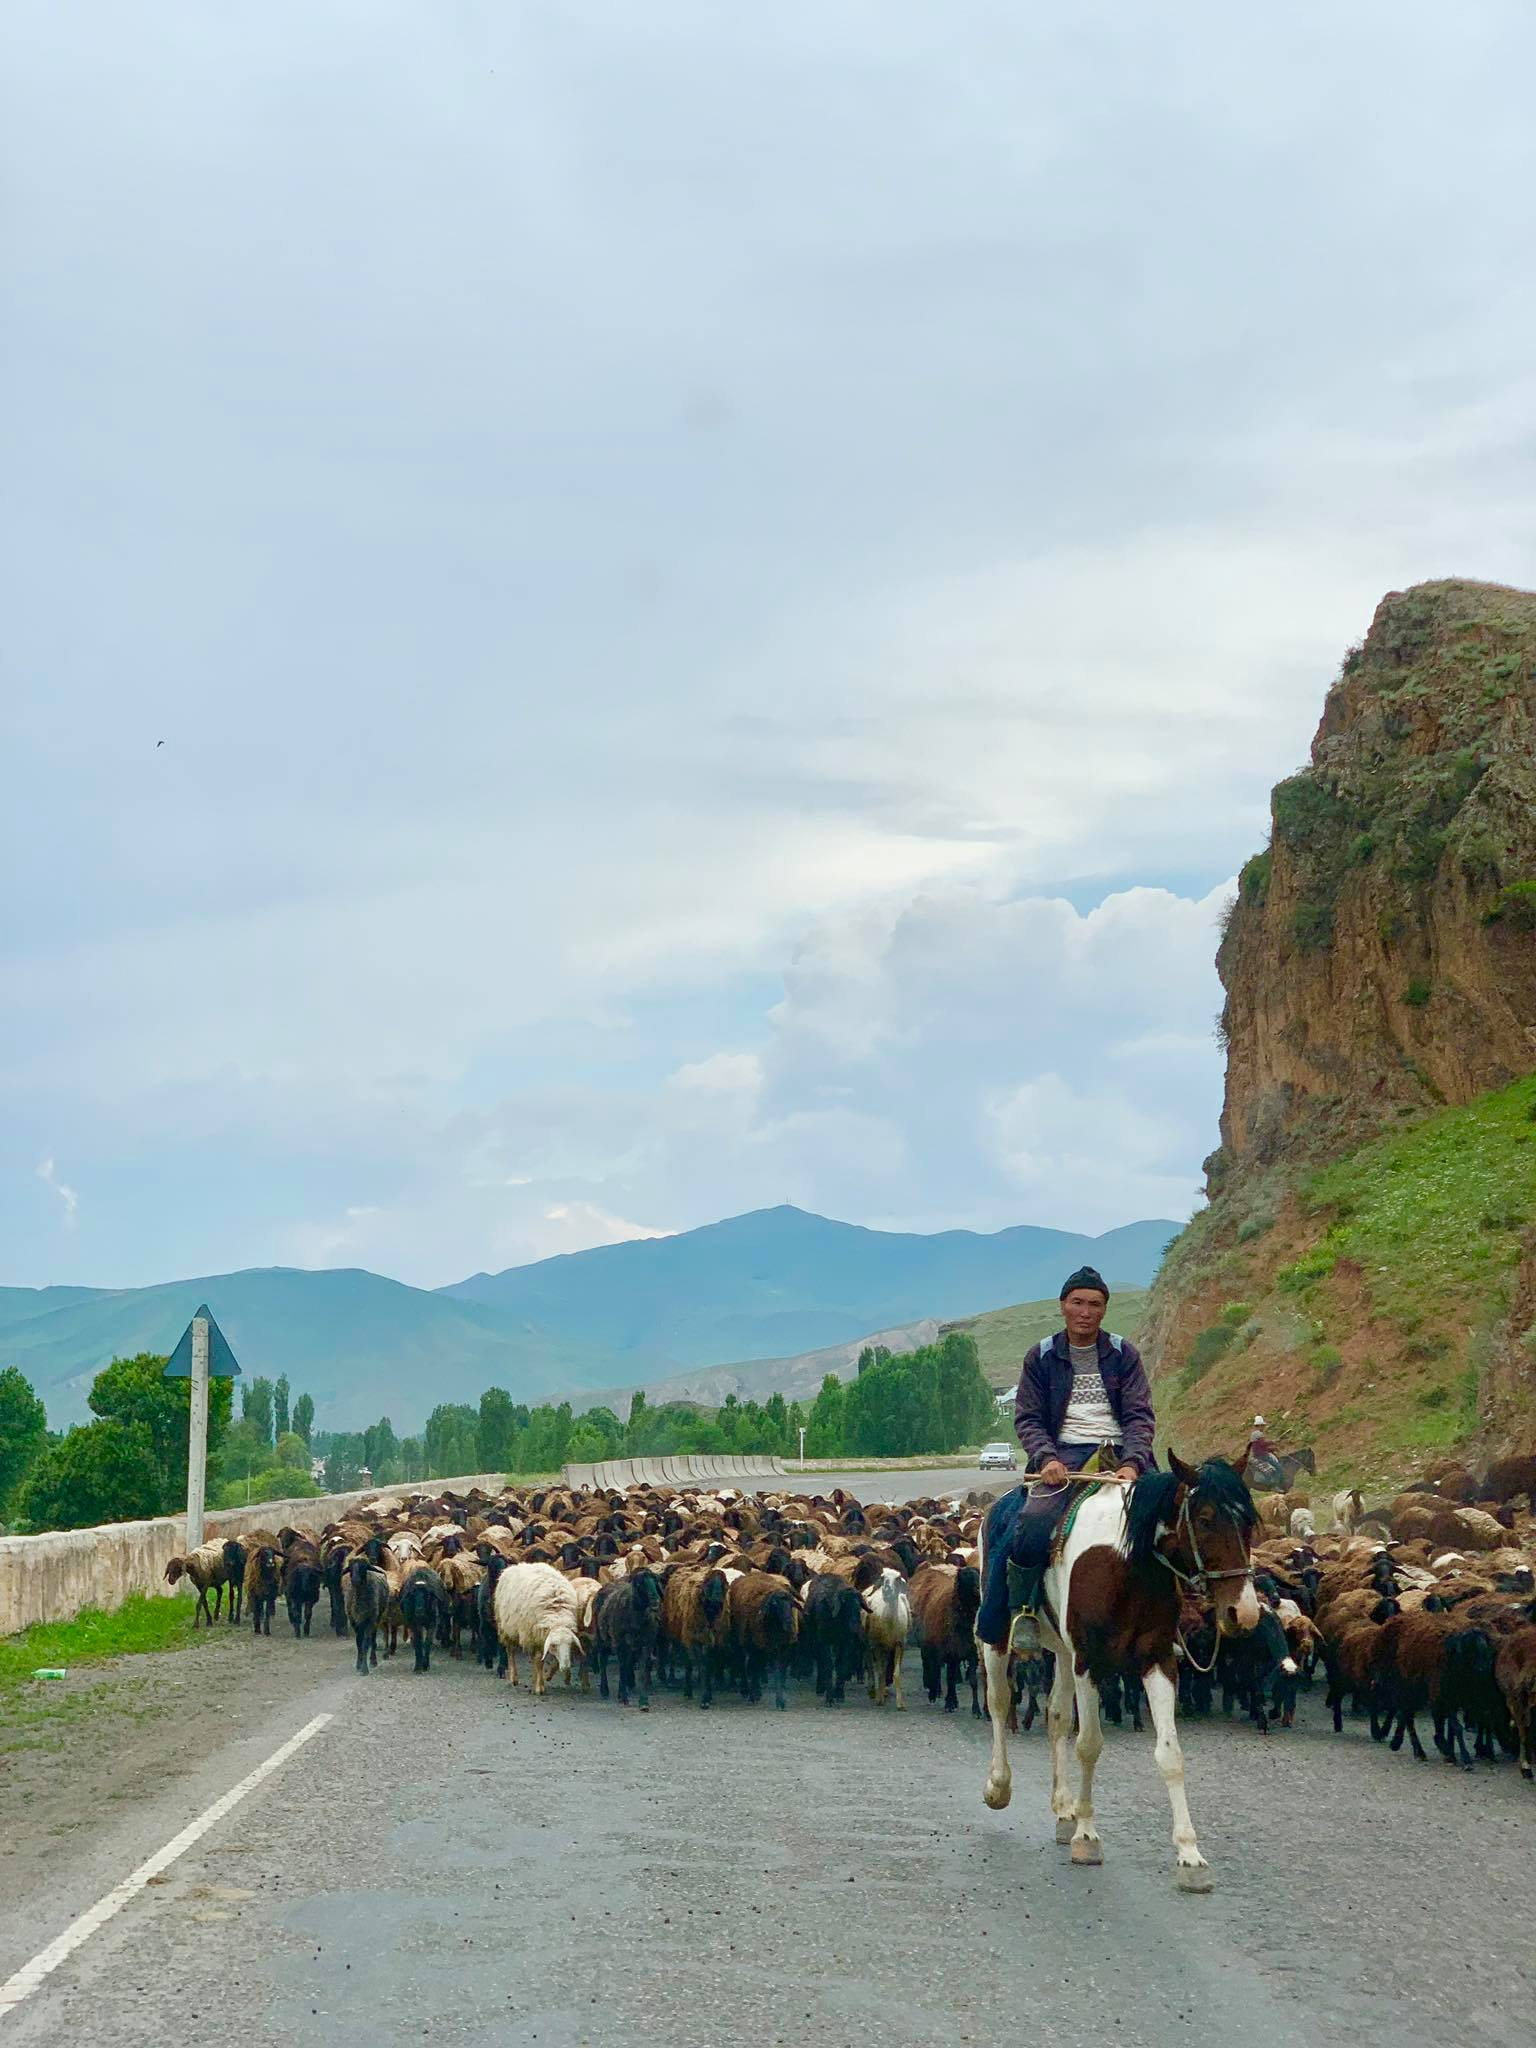 Kach Solo Travels in 2019 Hello from KYRGYZSTAN, my 128th country16.jpg